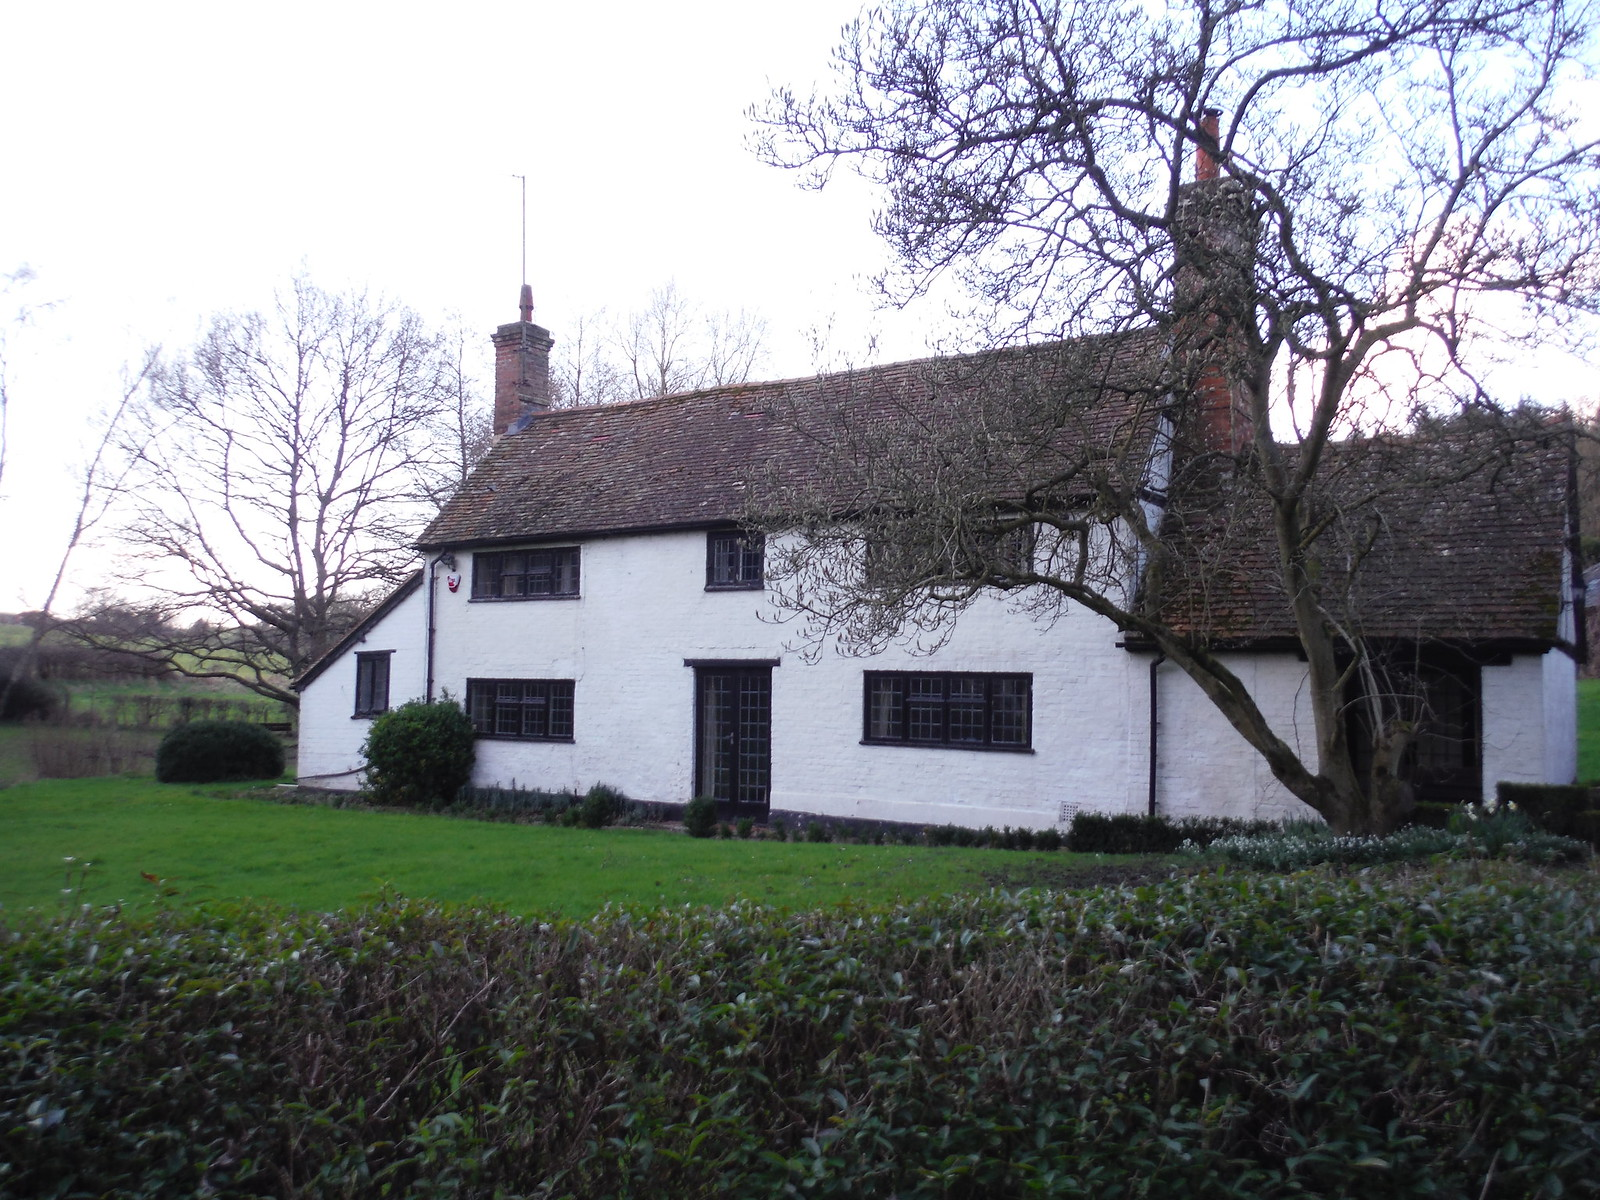 House in Midgham SWC Walk 117 Aldermaston to Woolhampton (via Stanford Dingley)